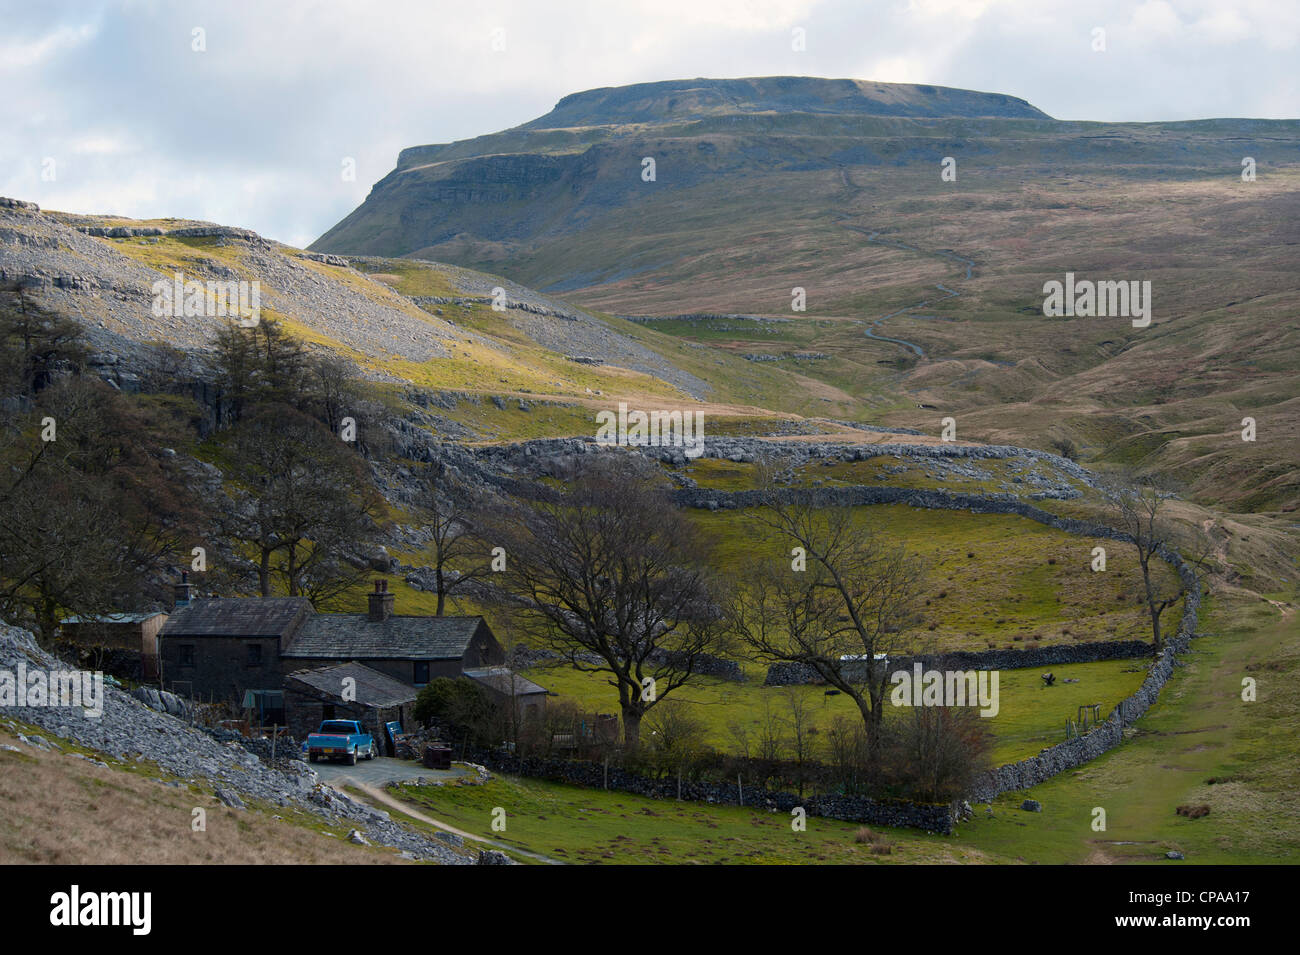 Ingleborough from Crina Bottom. Ingleton, Yorkshire Dales National Park, North Yorkshire, England, United Kingdom, Stock Photo